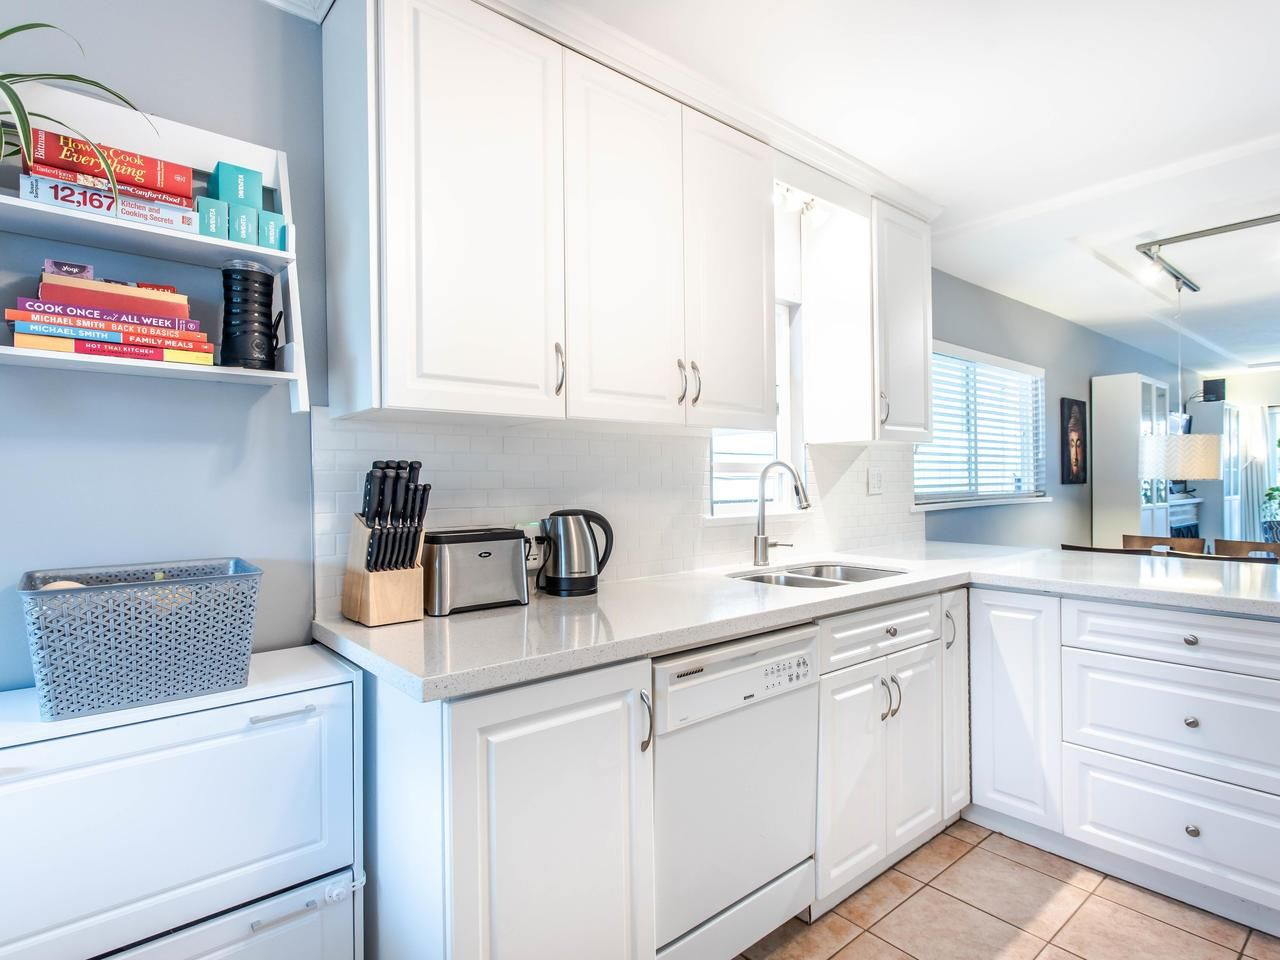 Photo 9: Photos: 4653 UNION STREET in Burnaby: Capitol Hill BN House for sale (Burnaby North)  : MLS®# R2493161